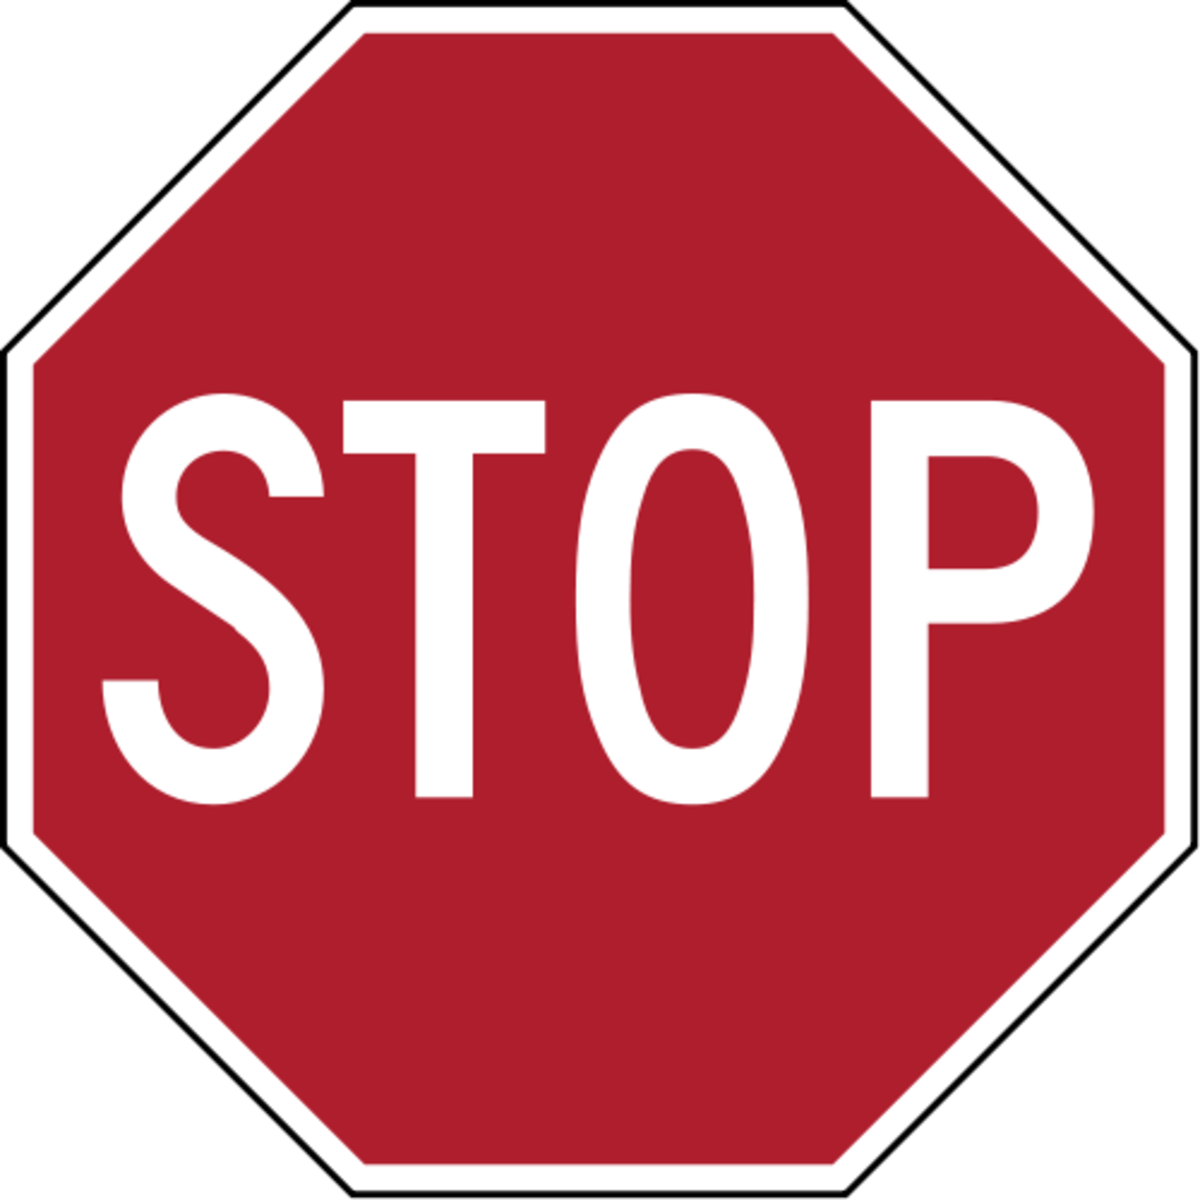 How to Make a Craft Stop Sign